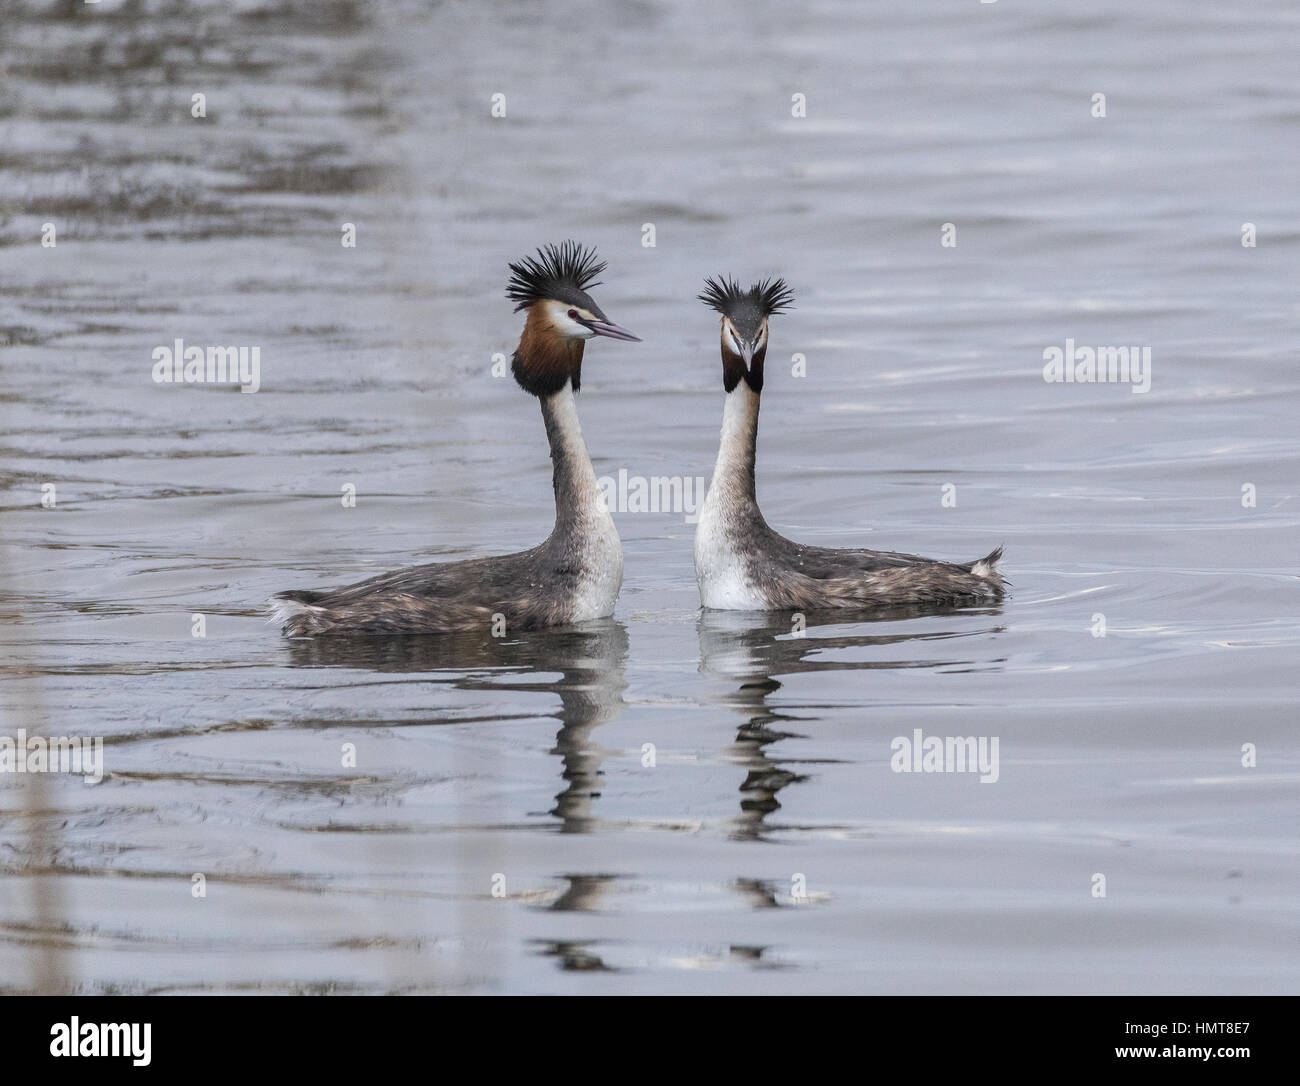 Great crested grebes, Podiceps cristatus beginning courting display in late winter, Somerset Levels. - Stock Image